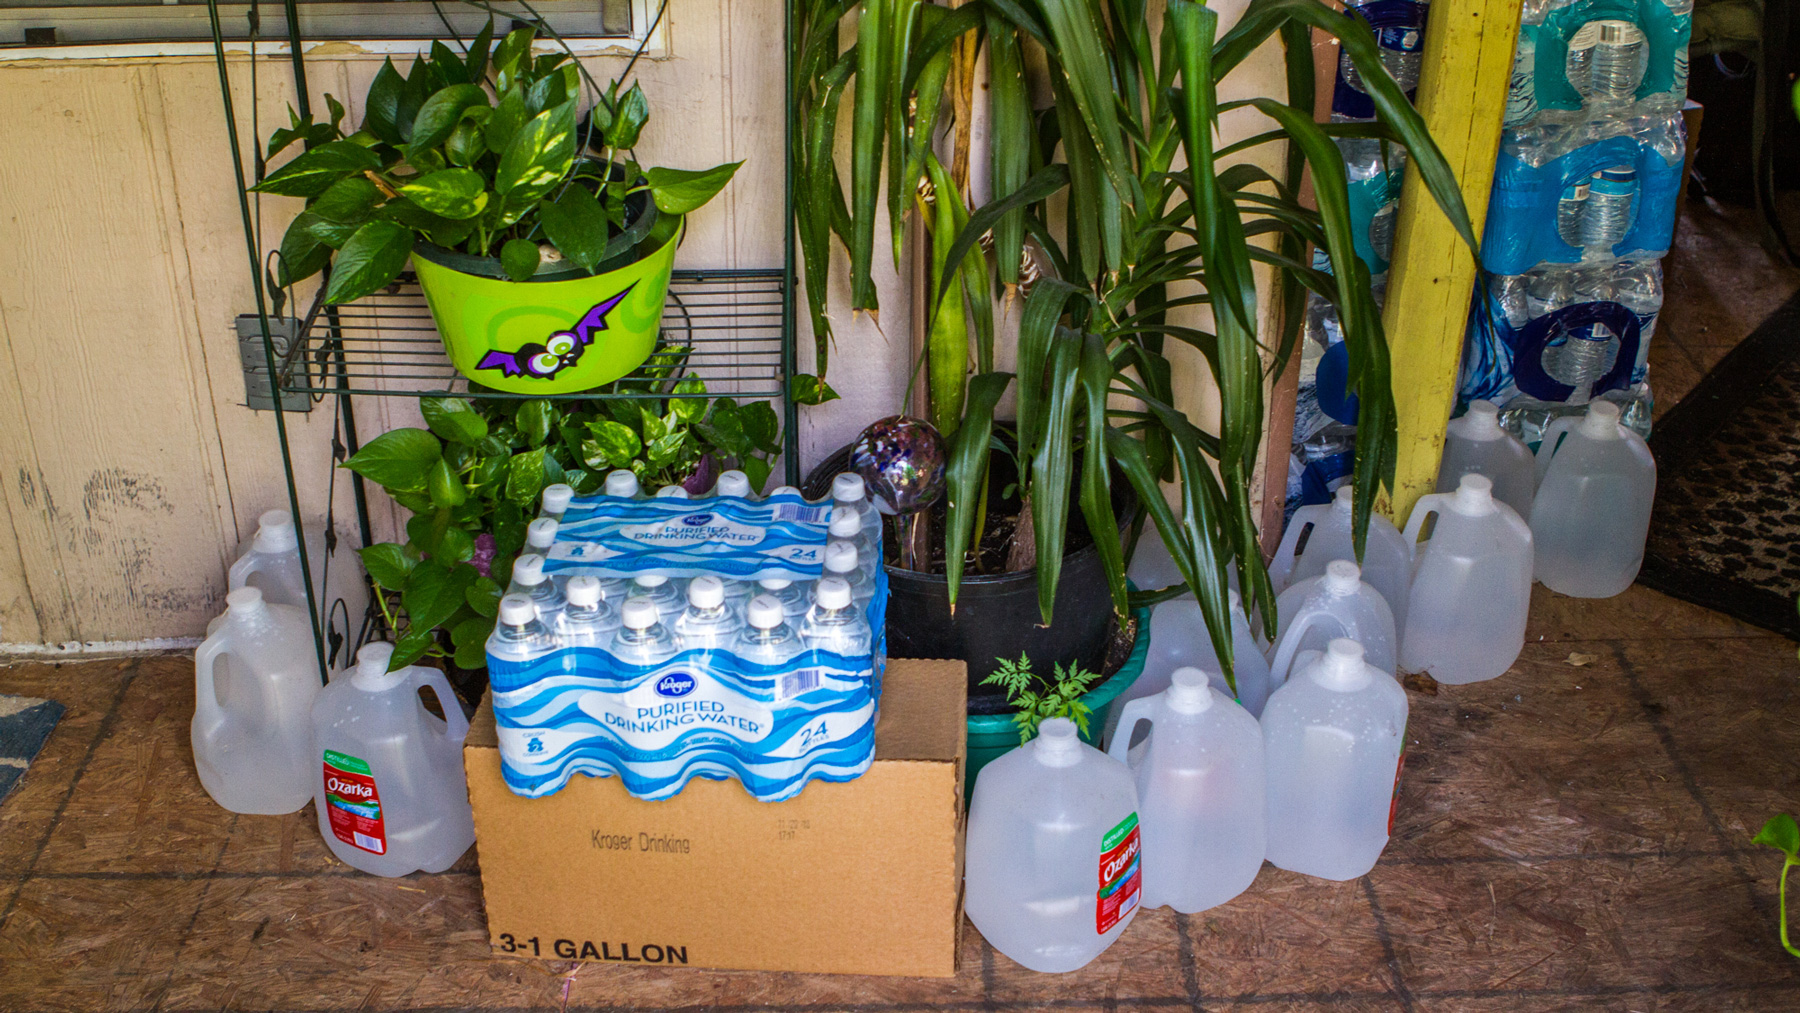 Sandbranch resident Leroy Thomas said his family relies on cases of bottled water that are delivered weekly by a church. (Brandon Kitchin/News21)